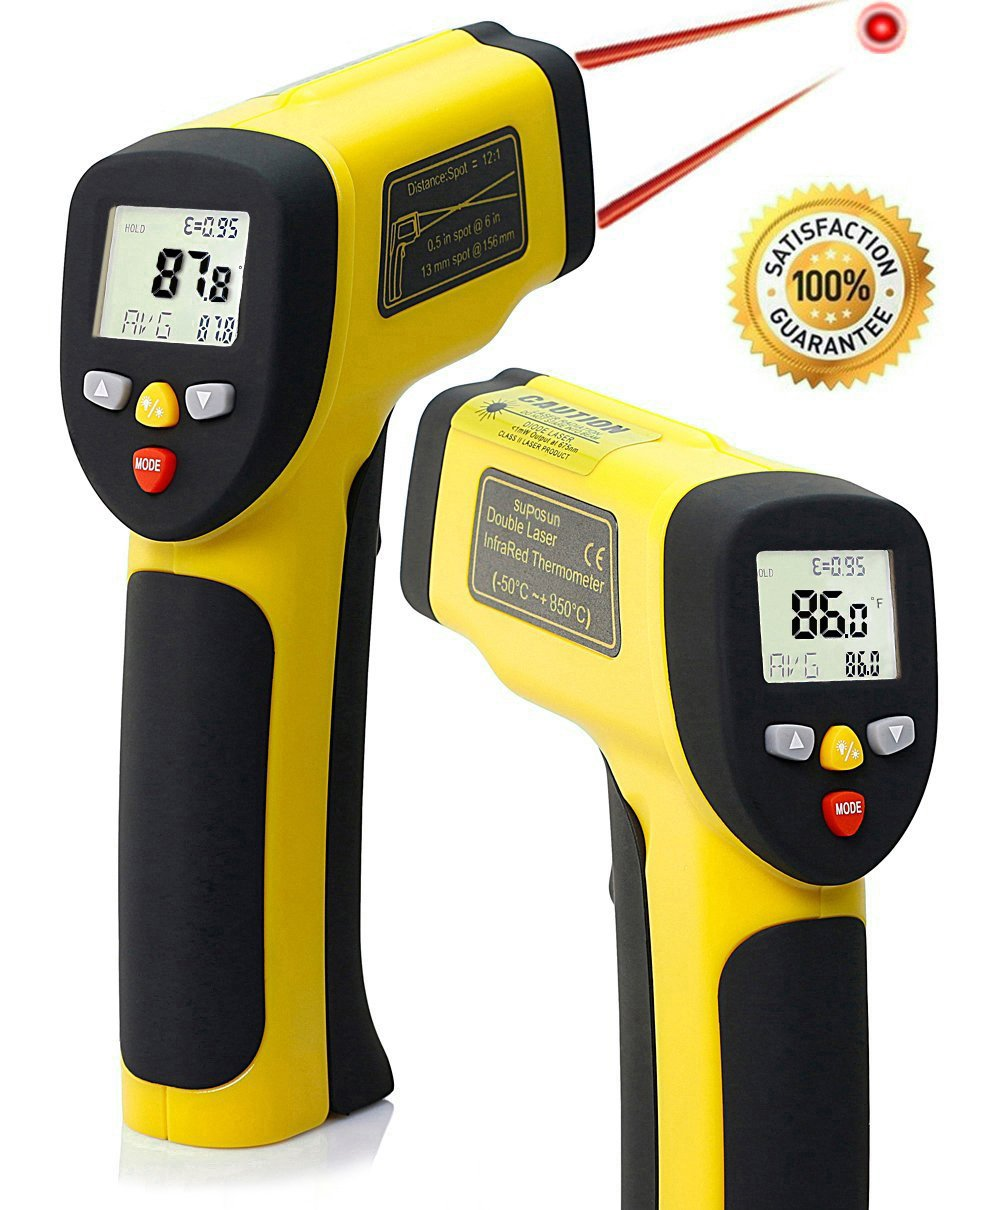 Suposun Dual Laser Infrared Thermometer,Non-Contact Accurate Digital Surface IR Temperature Gun, -58°F to 1562°F Range,Multi-Function Non-Slip Yellow+Black Fasion Design